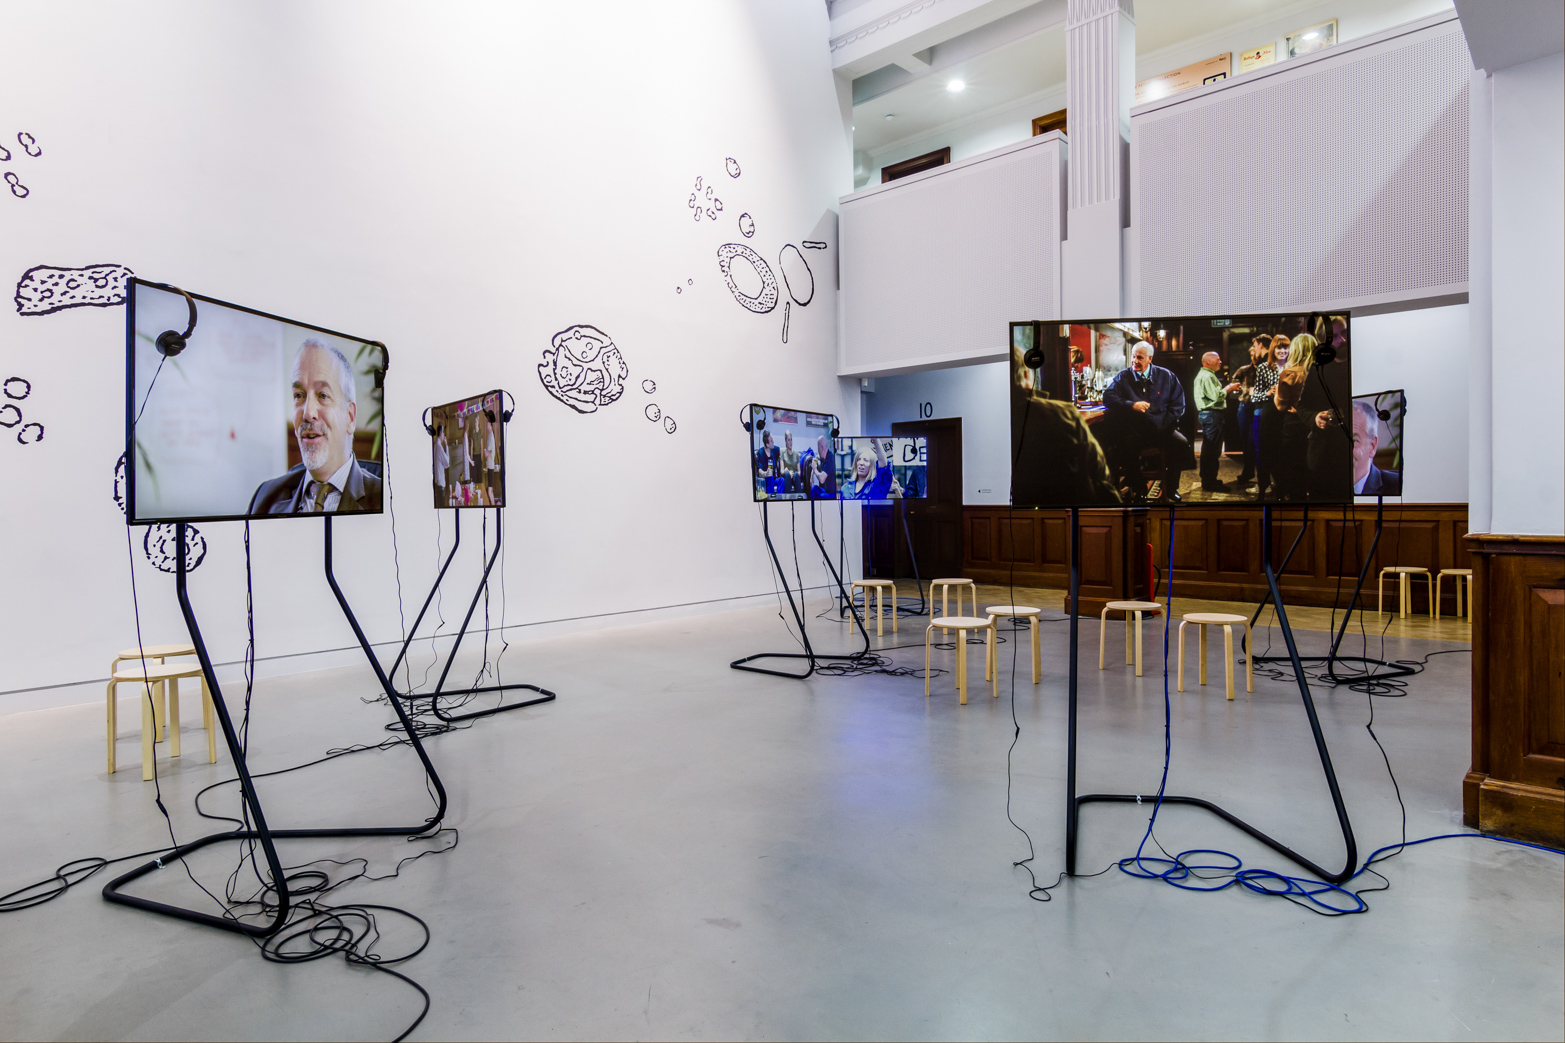 Rehana Zaman, Some Women Other Women and all the Bittermen, 2014. Installation View, The Tetley, Leeds, UK.